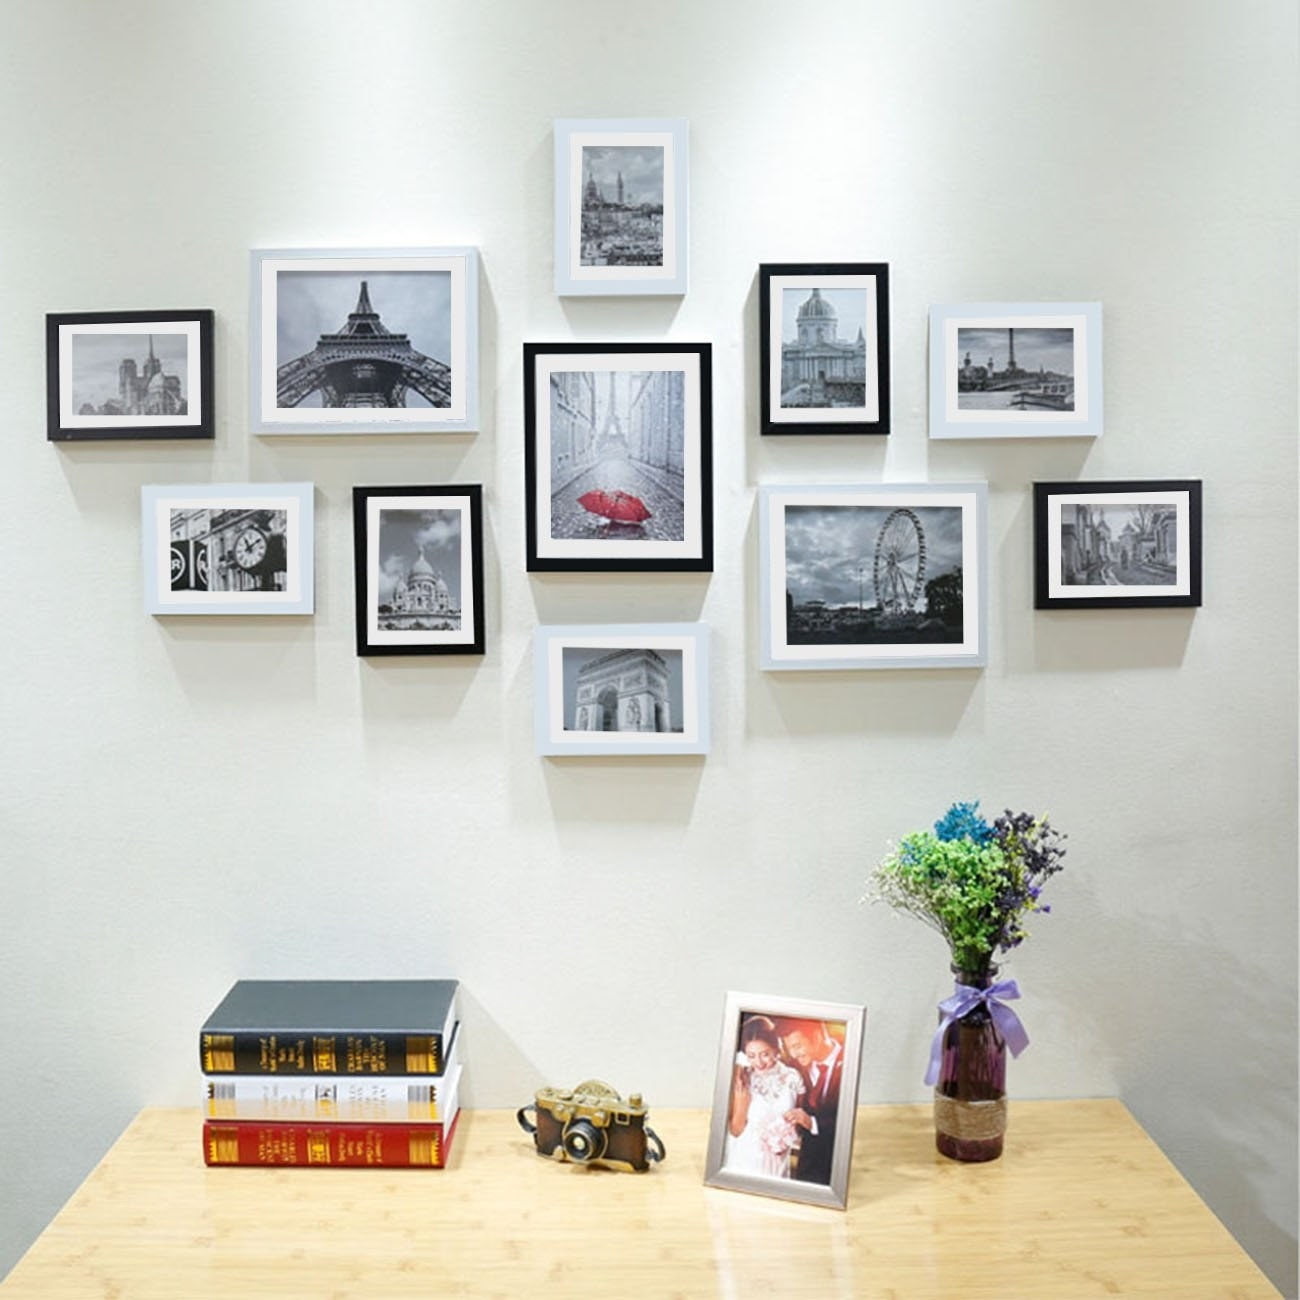 Photo frames hung on a wall with images of numerous landscapes, in front of a table.